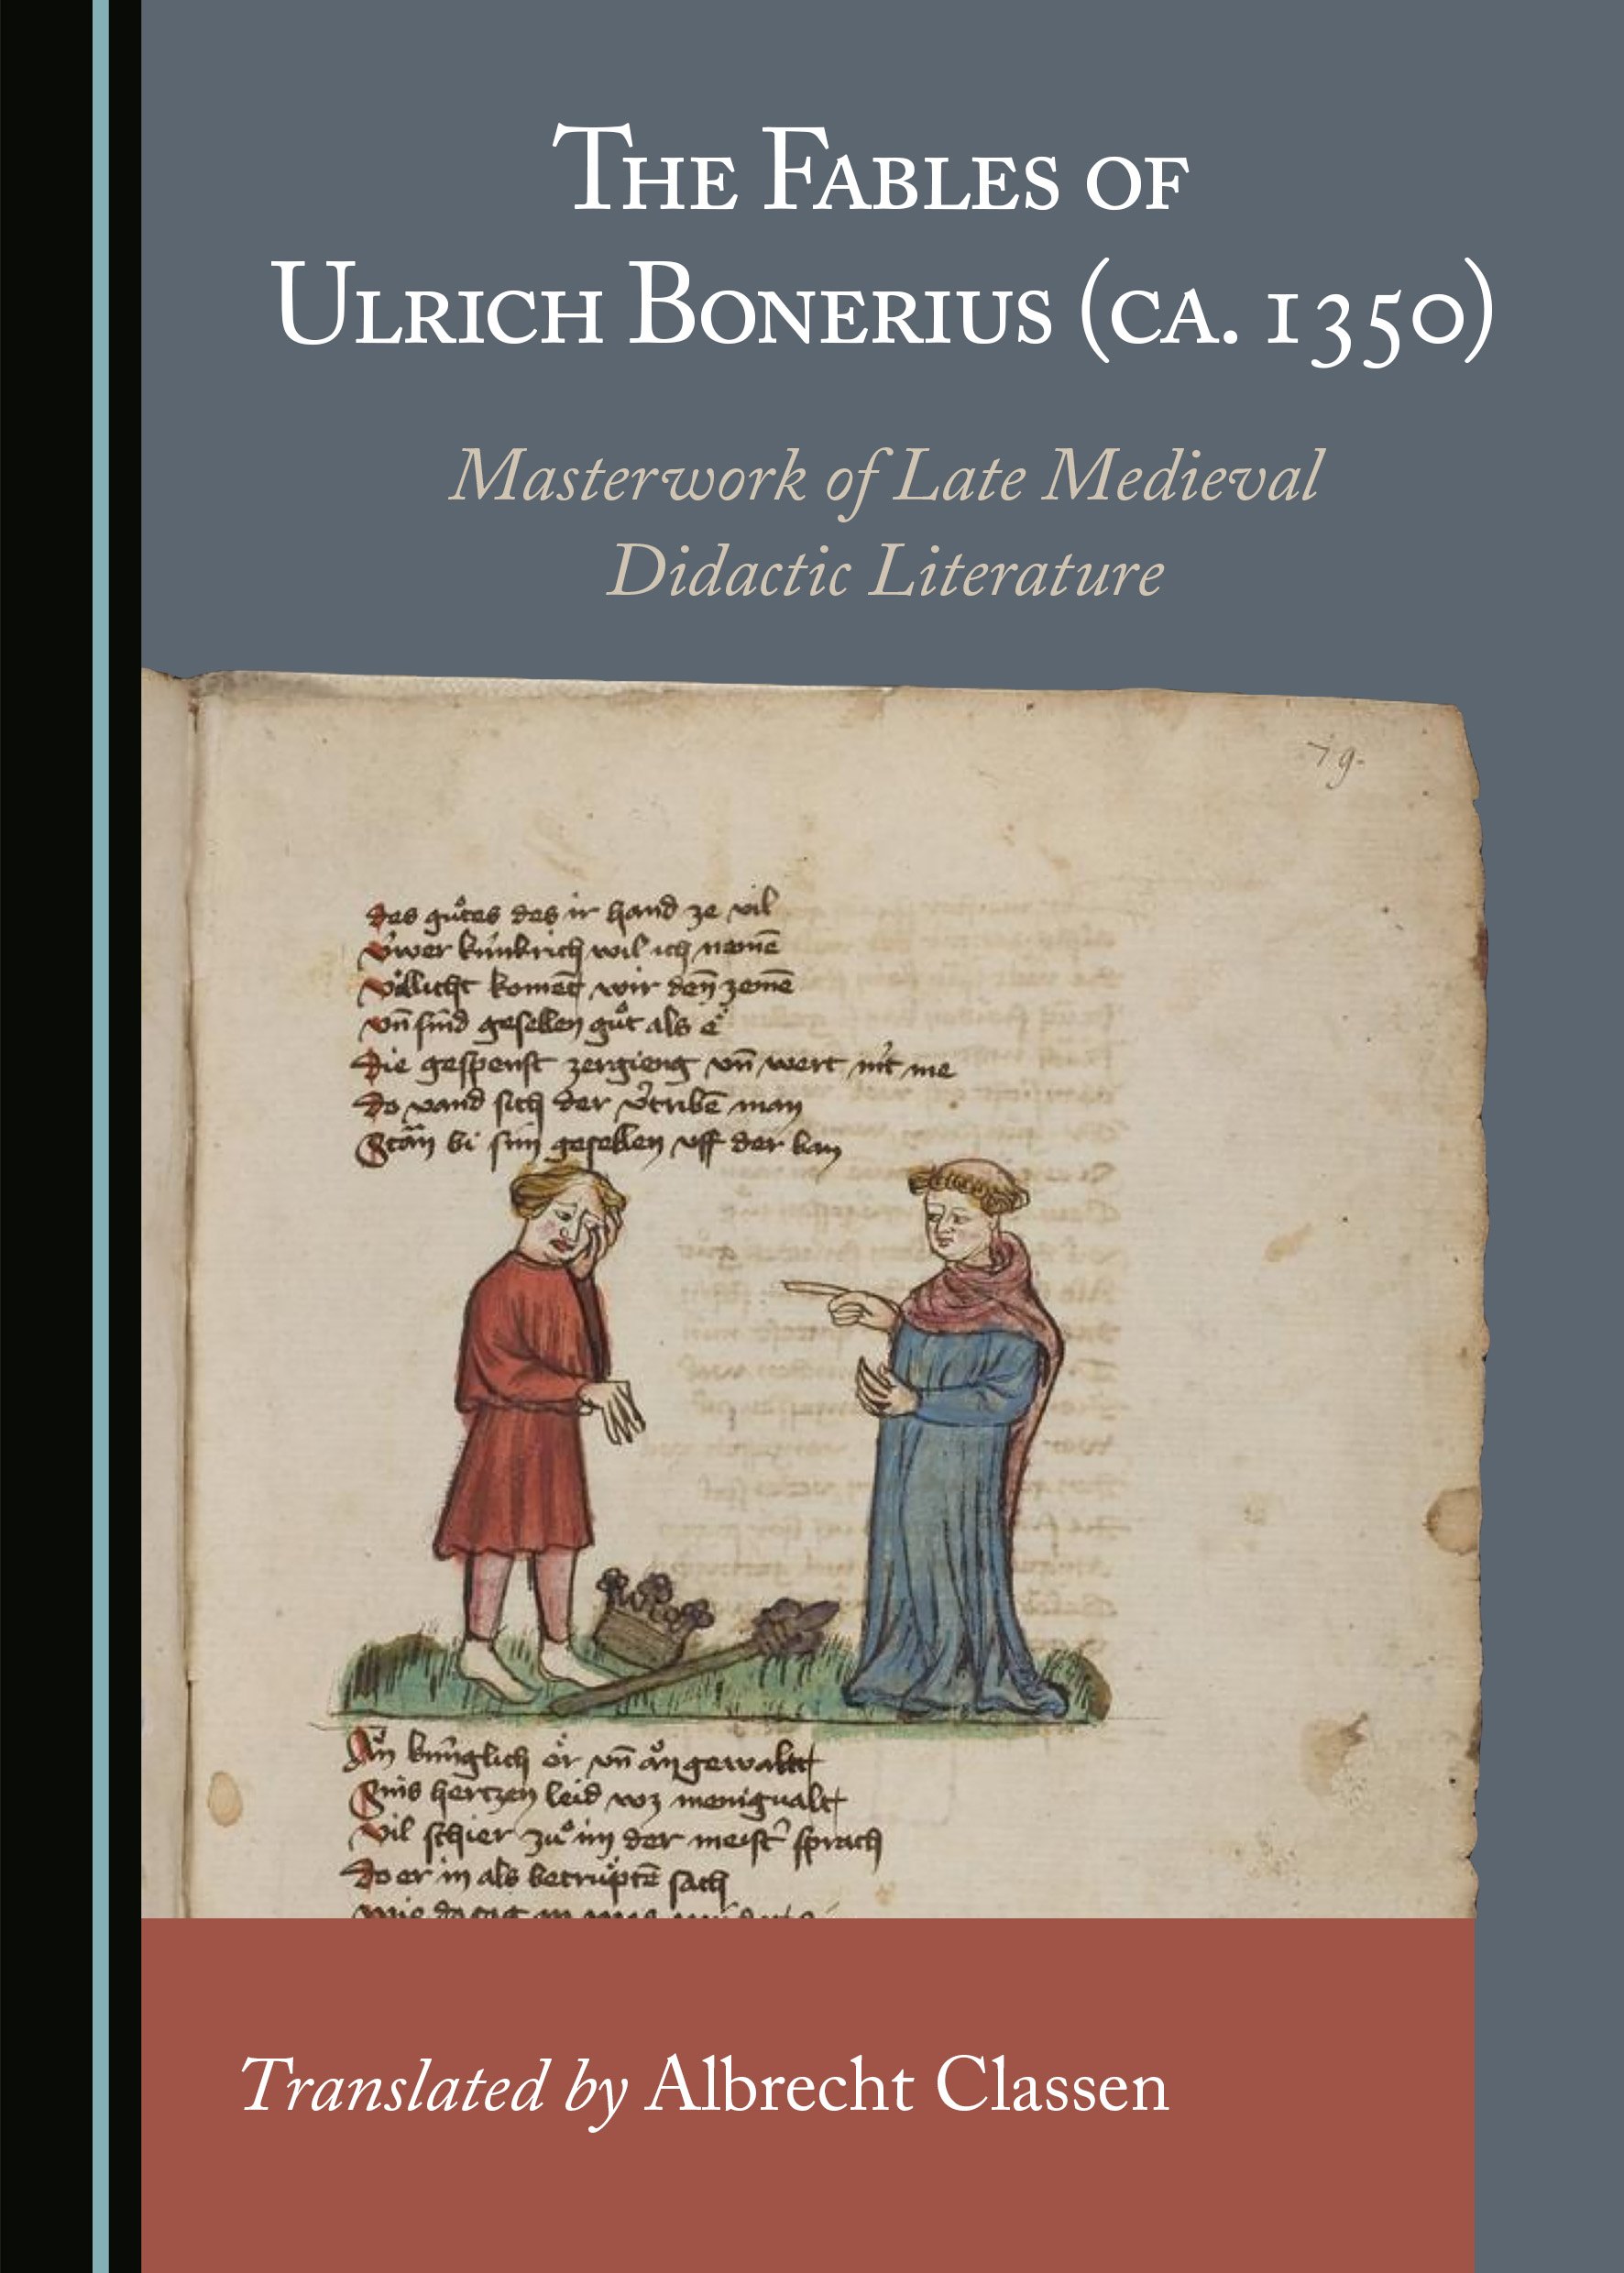 The Fables of Ulrich Bonerius (ca. 1350): Masterwork of Late Medieval Didactic Literature